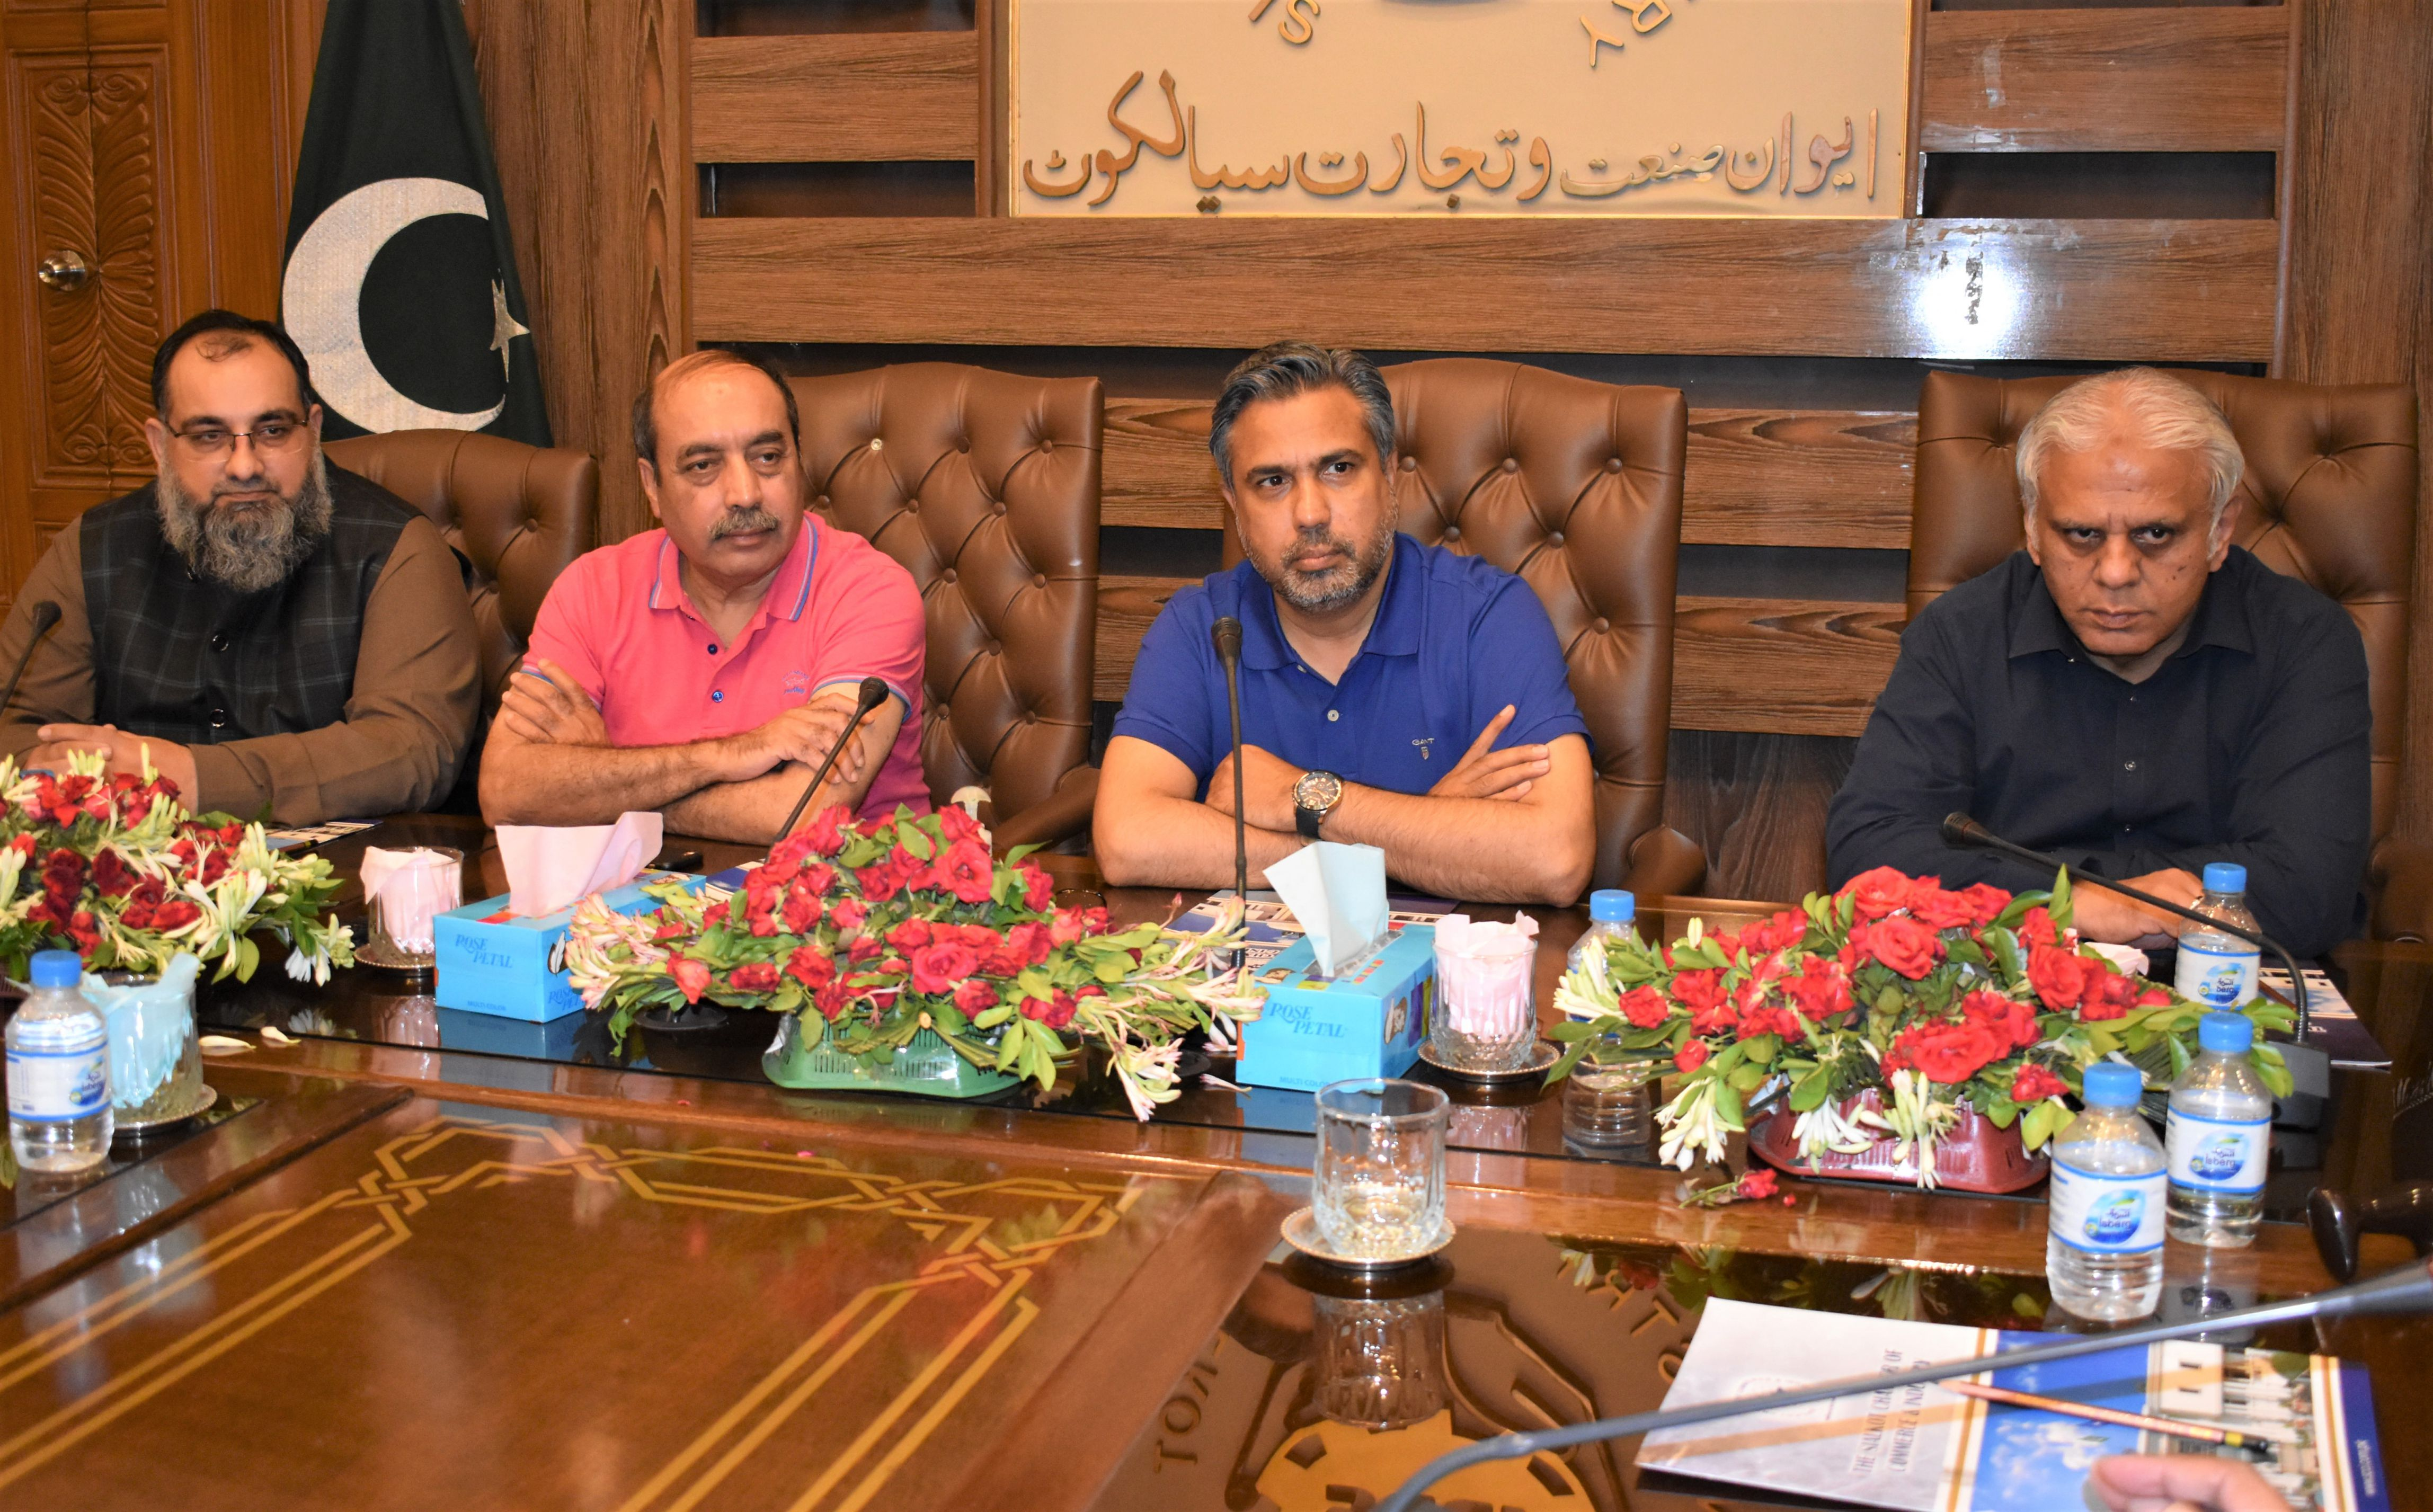 On September 15, 2021, Mr. Qaisar Iqbal Baryar, President, Sialkot Chamber of Commerce & Industry chaired a Joint meeting of Trade Bodies of Sialkot to finalize sector-wise purchase formula regarding 5% Withholding Sales Tax.  Mr. Khuram Aslam, Senior Vice President, Mr. Ansar Aziz Puri, Vice President, SCCI and Mr. Ijaz Khokhar also attended the meeting.